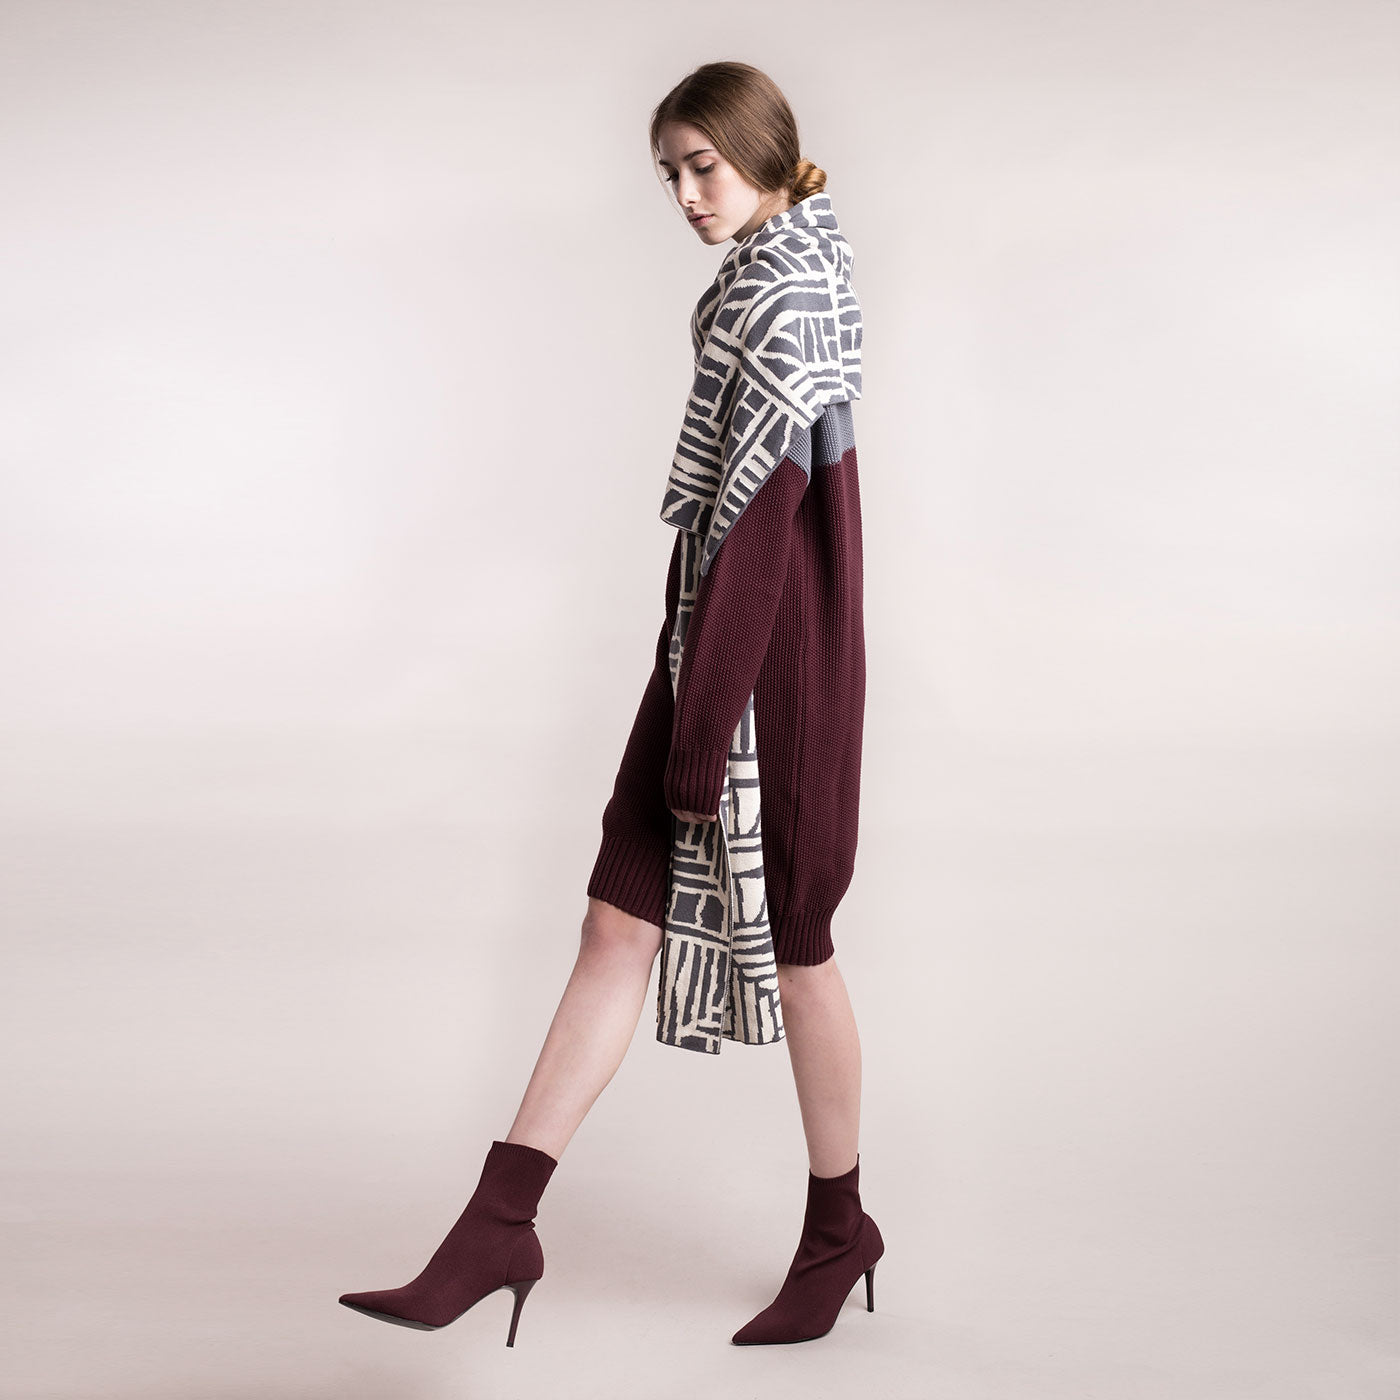 The model wears a grey and burgundy, sustainable organic cotton, knitted double-colour dress, with a scarf.